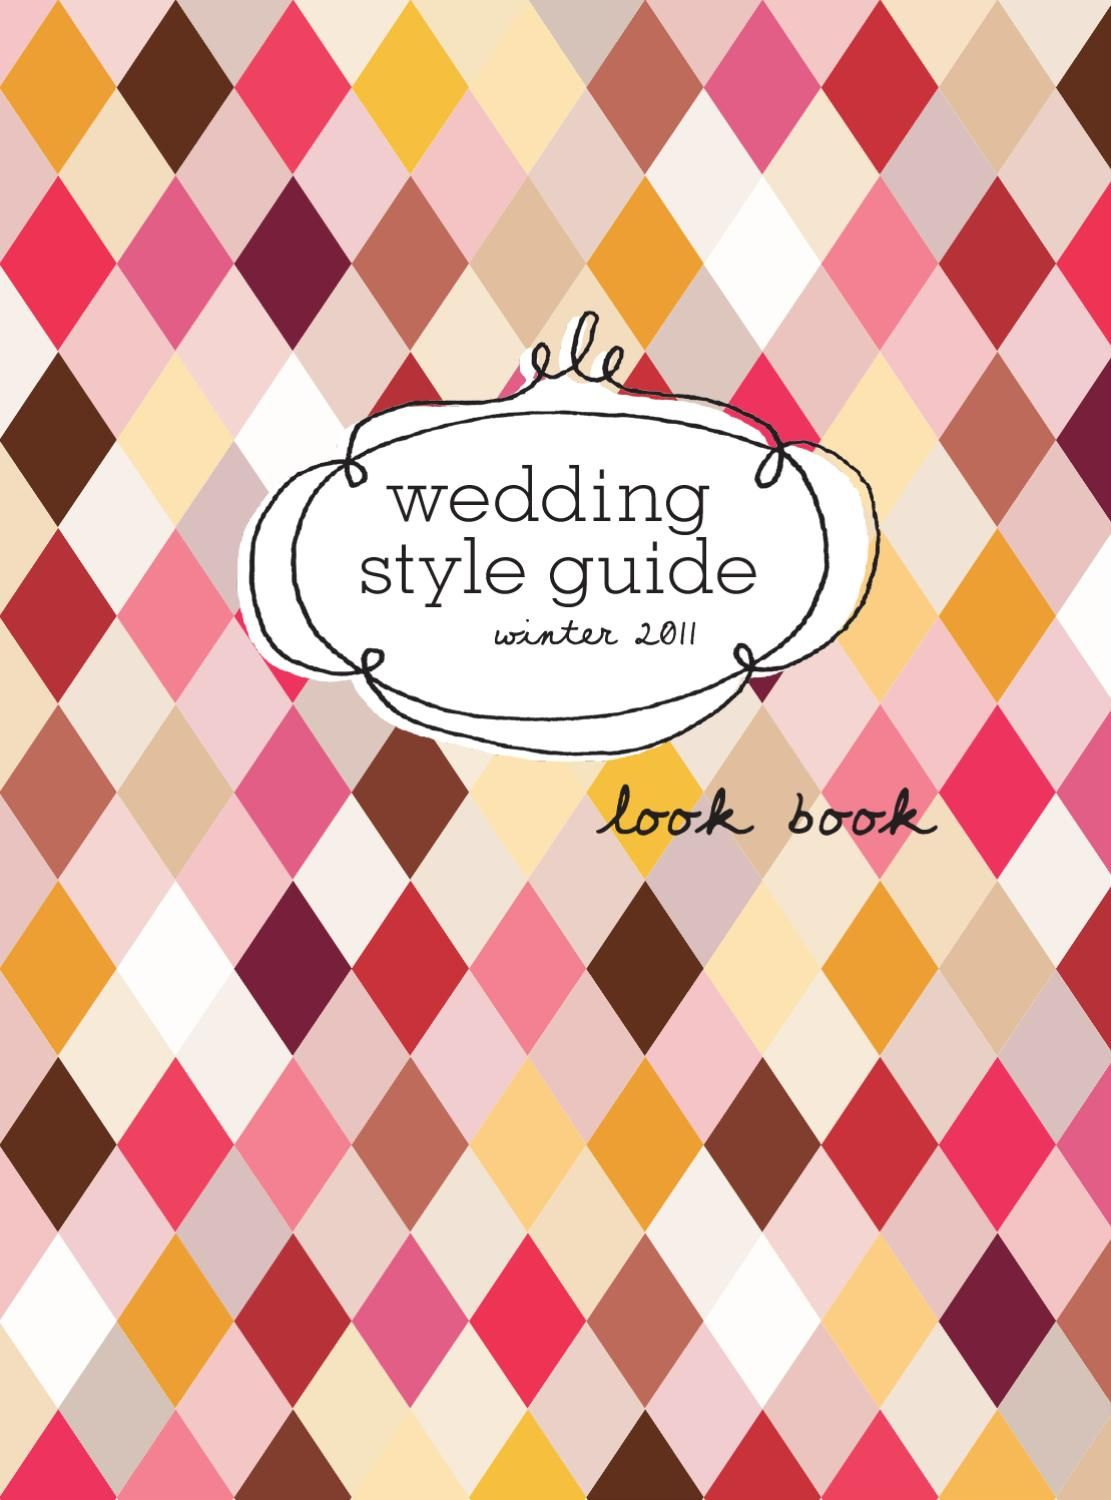 Winter 2011 Look Book Wedding Style Guide Issue 19  Winter 2011 Wedding Ideas from Wedding Style Guide Issue 19 Look Book